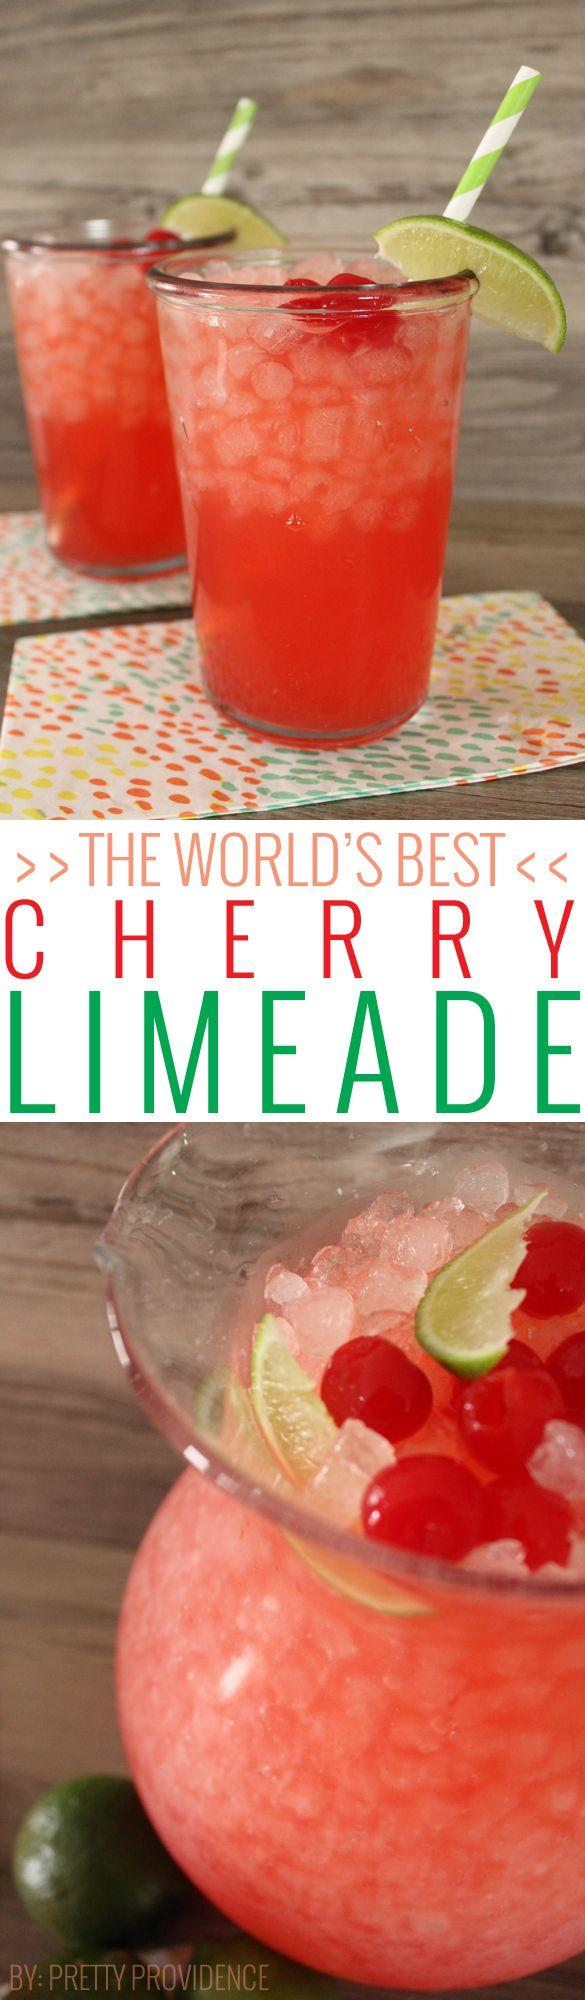 Wedding - The World's Best Cherry Limeade